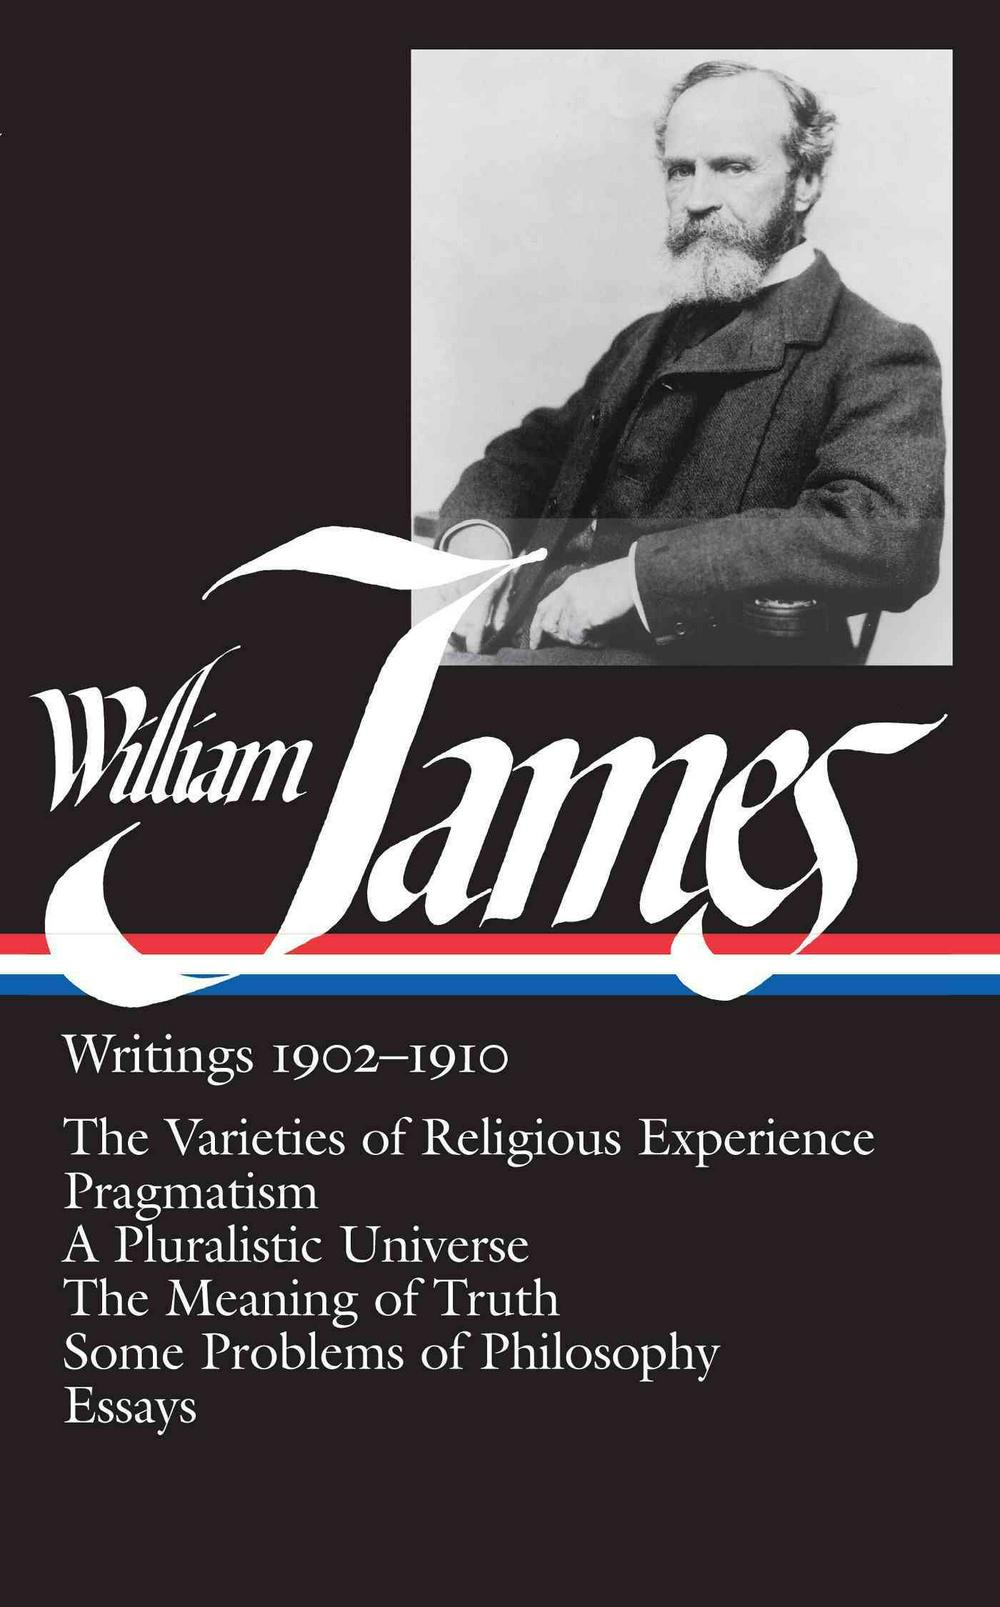 William James: Writings 1902-1910 (LOA #38) by William James, ISBN: 9780940450387